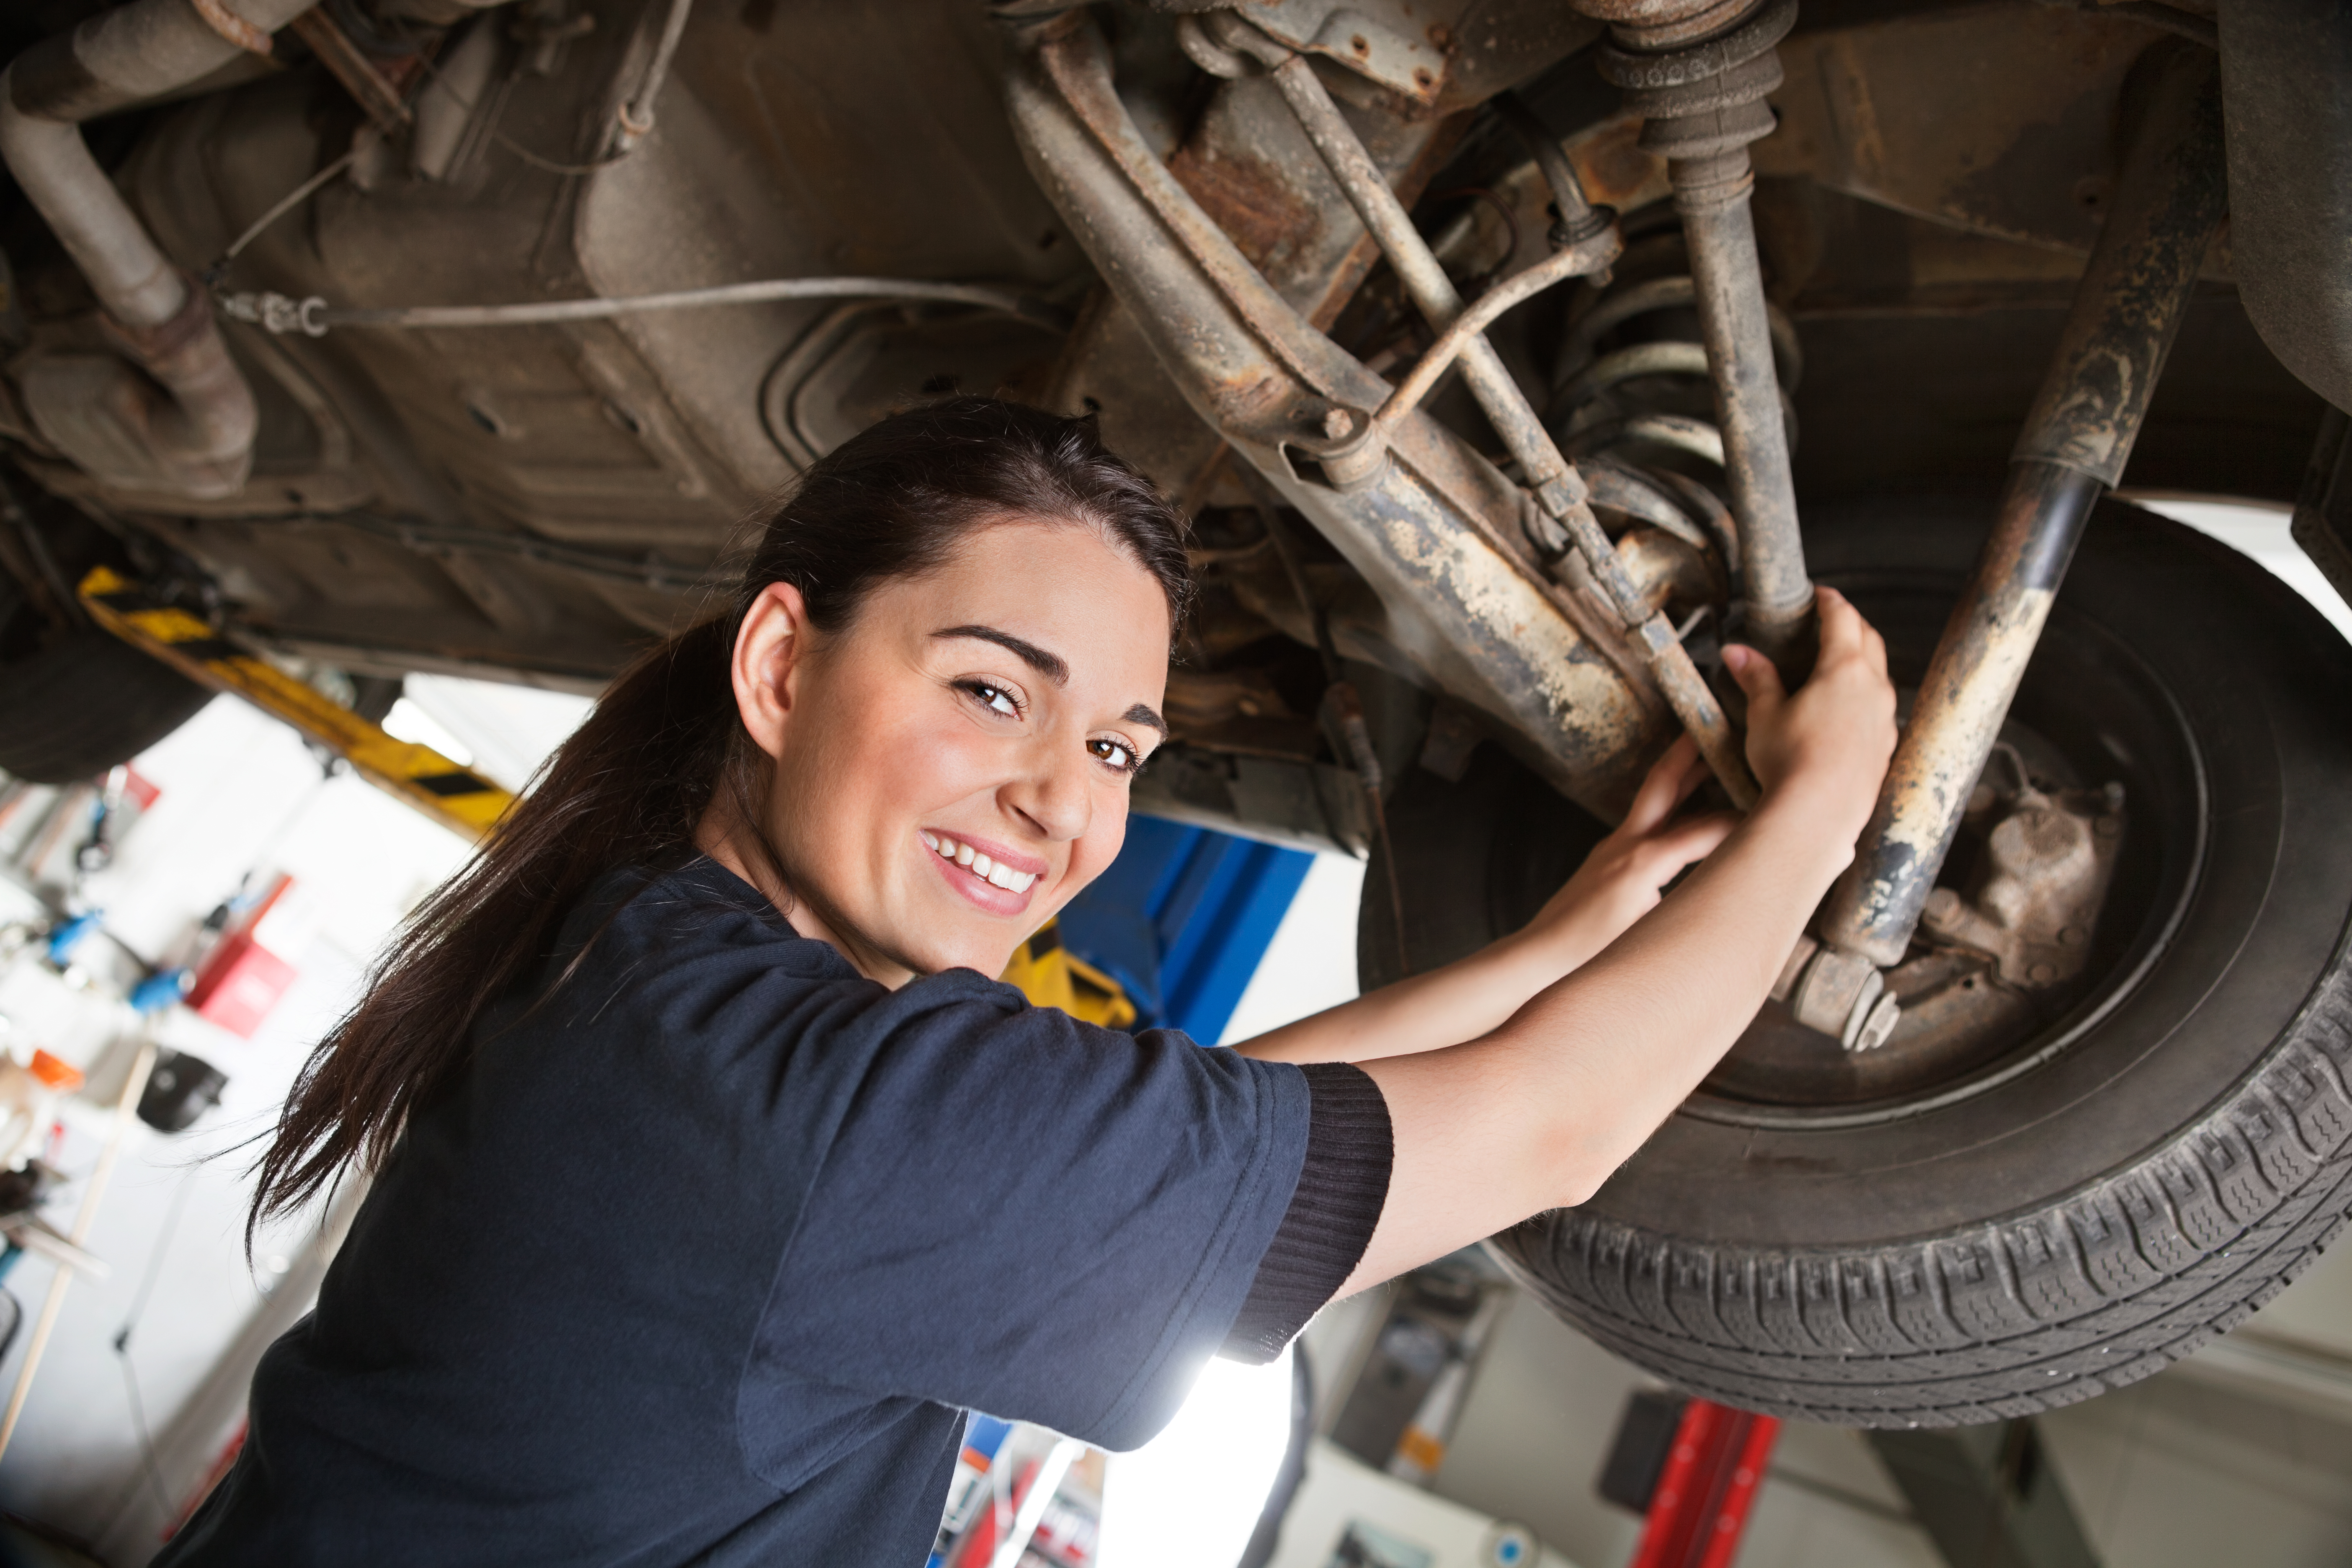 1930237-portrait-of-smiling-young-female-mechanic.jpg